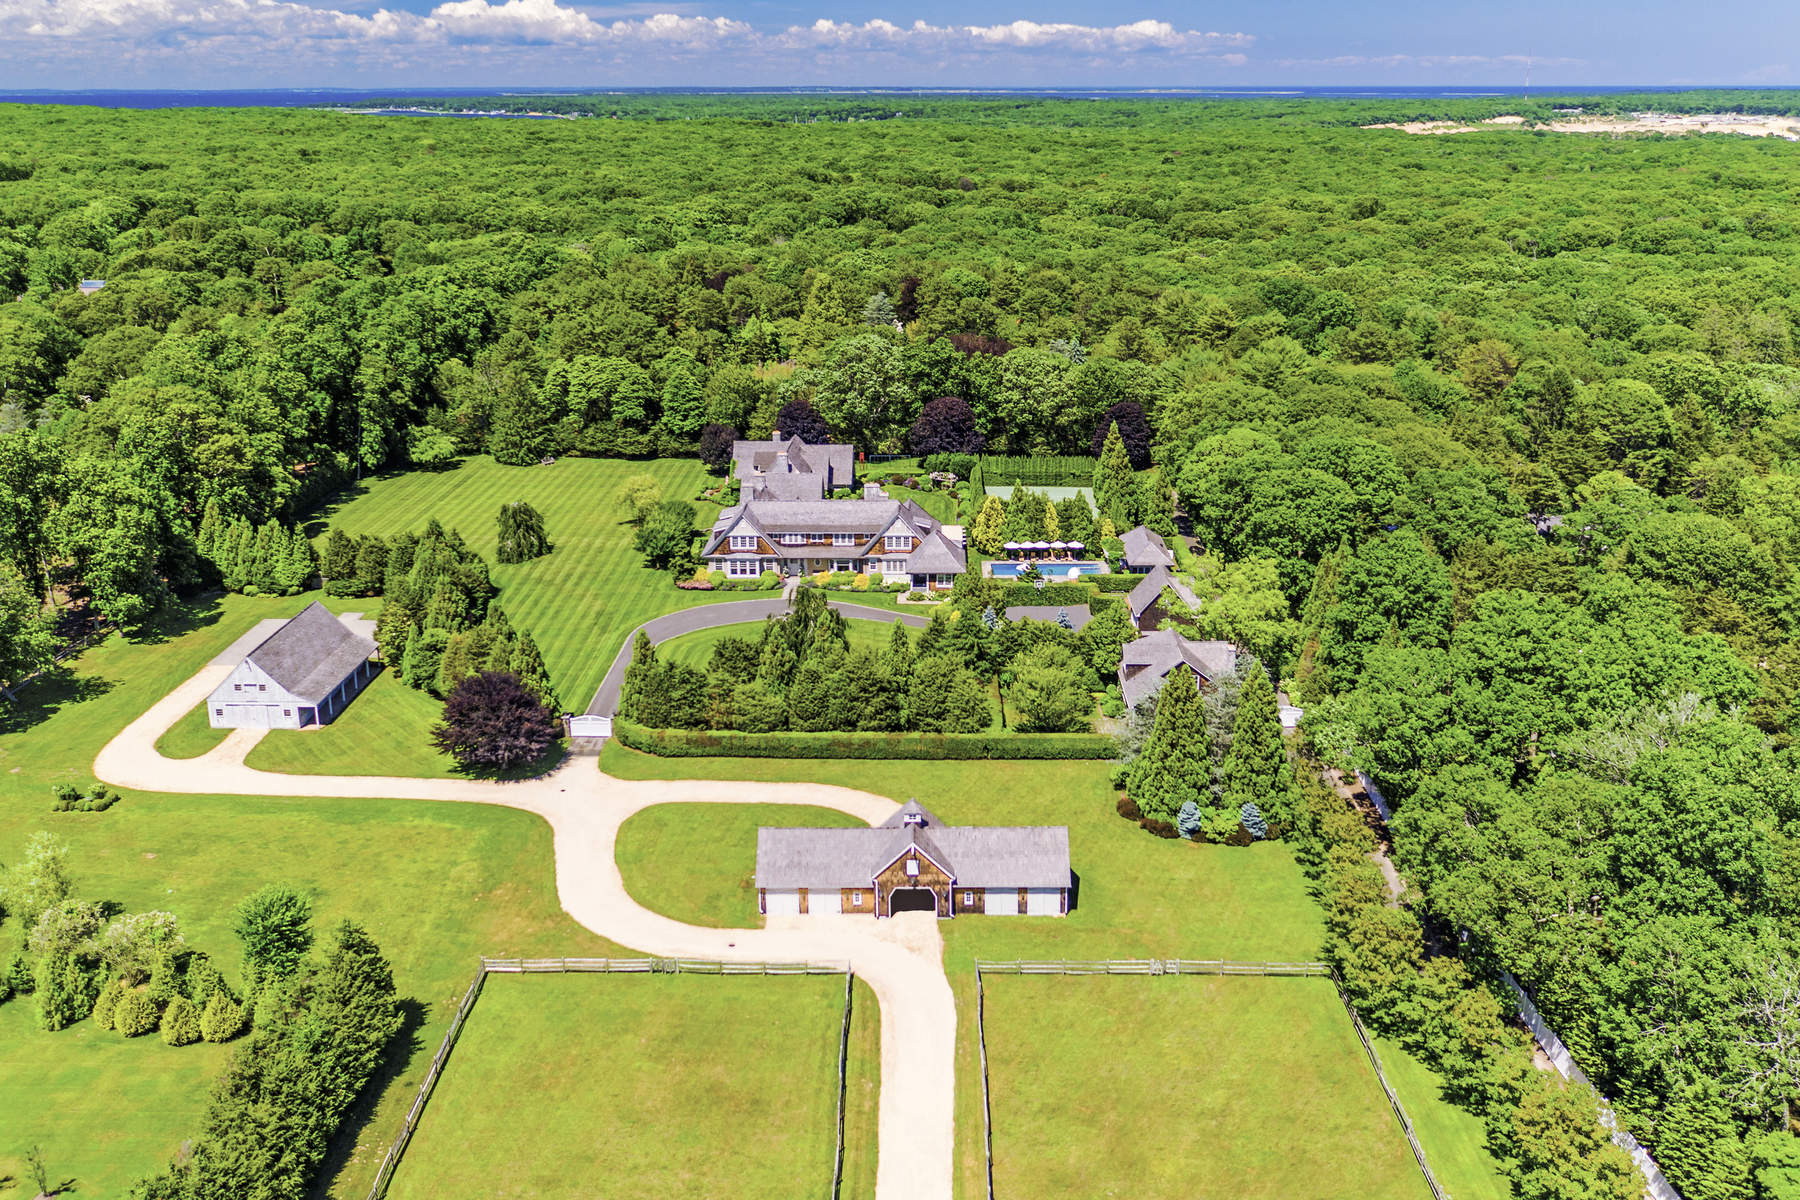 Moradia para Venda às WORLD CLASS EAST HAMPTON ESTATE 172 Cedar Street, East Hampton, Nova York, 11937 Estados Unidos